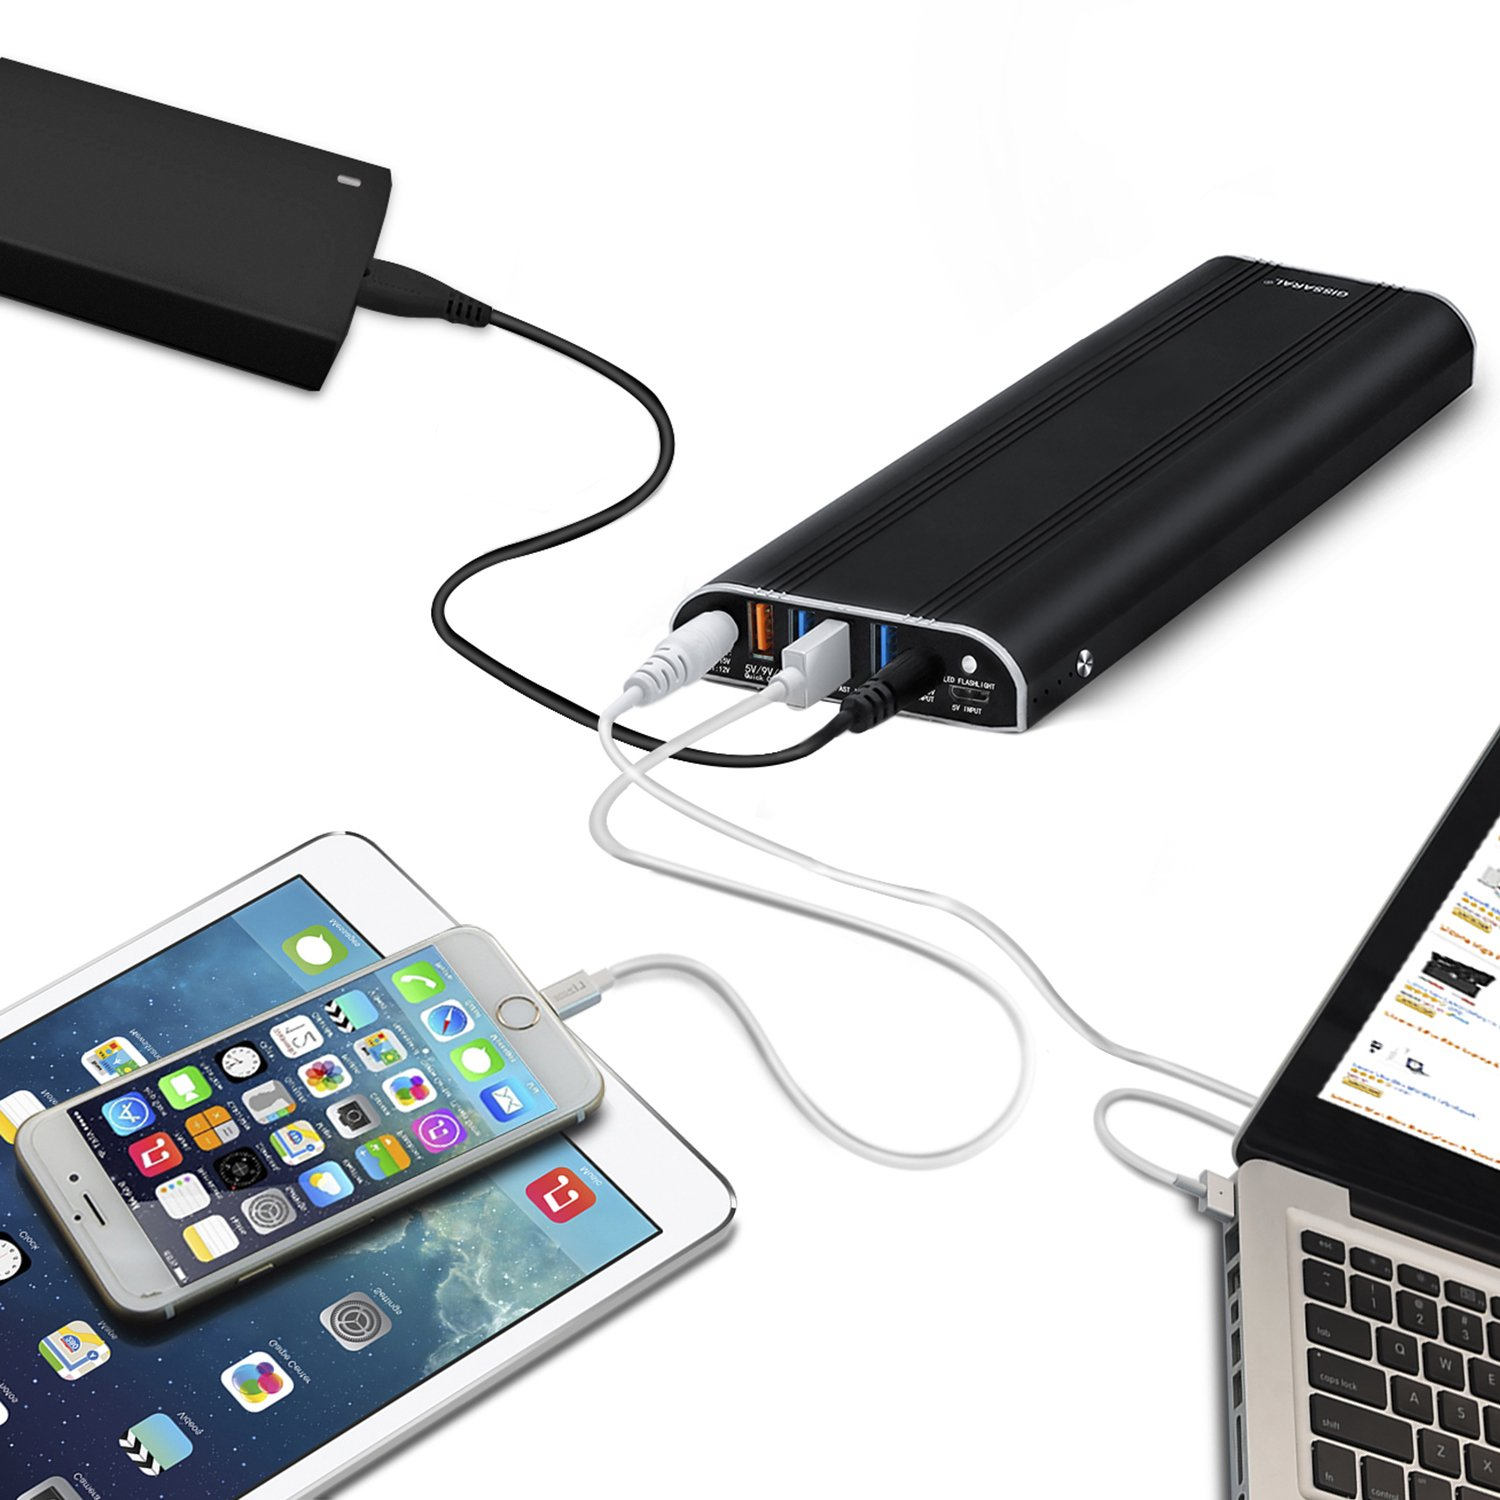 GISSARAL 35000mAh Power Bank External Battery Portable Charger for MacBook Pro MacBook Air, 4 USB Ports Quick Charge for New MacBook Tablets or Smartphones -Black by GISSARAL (Image #6)